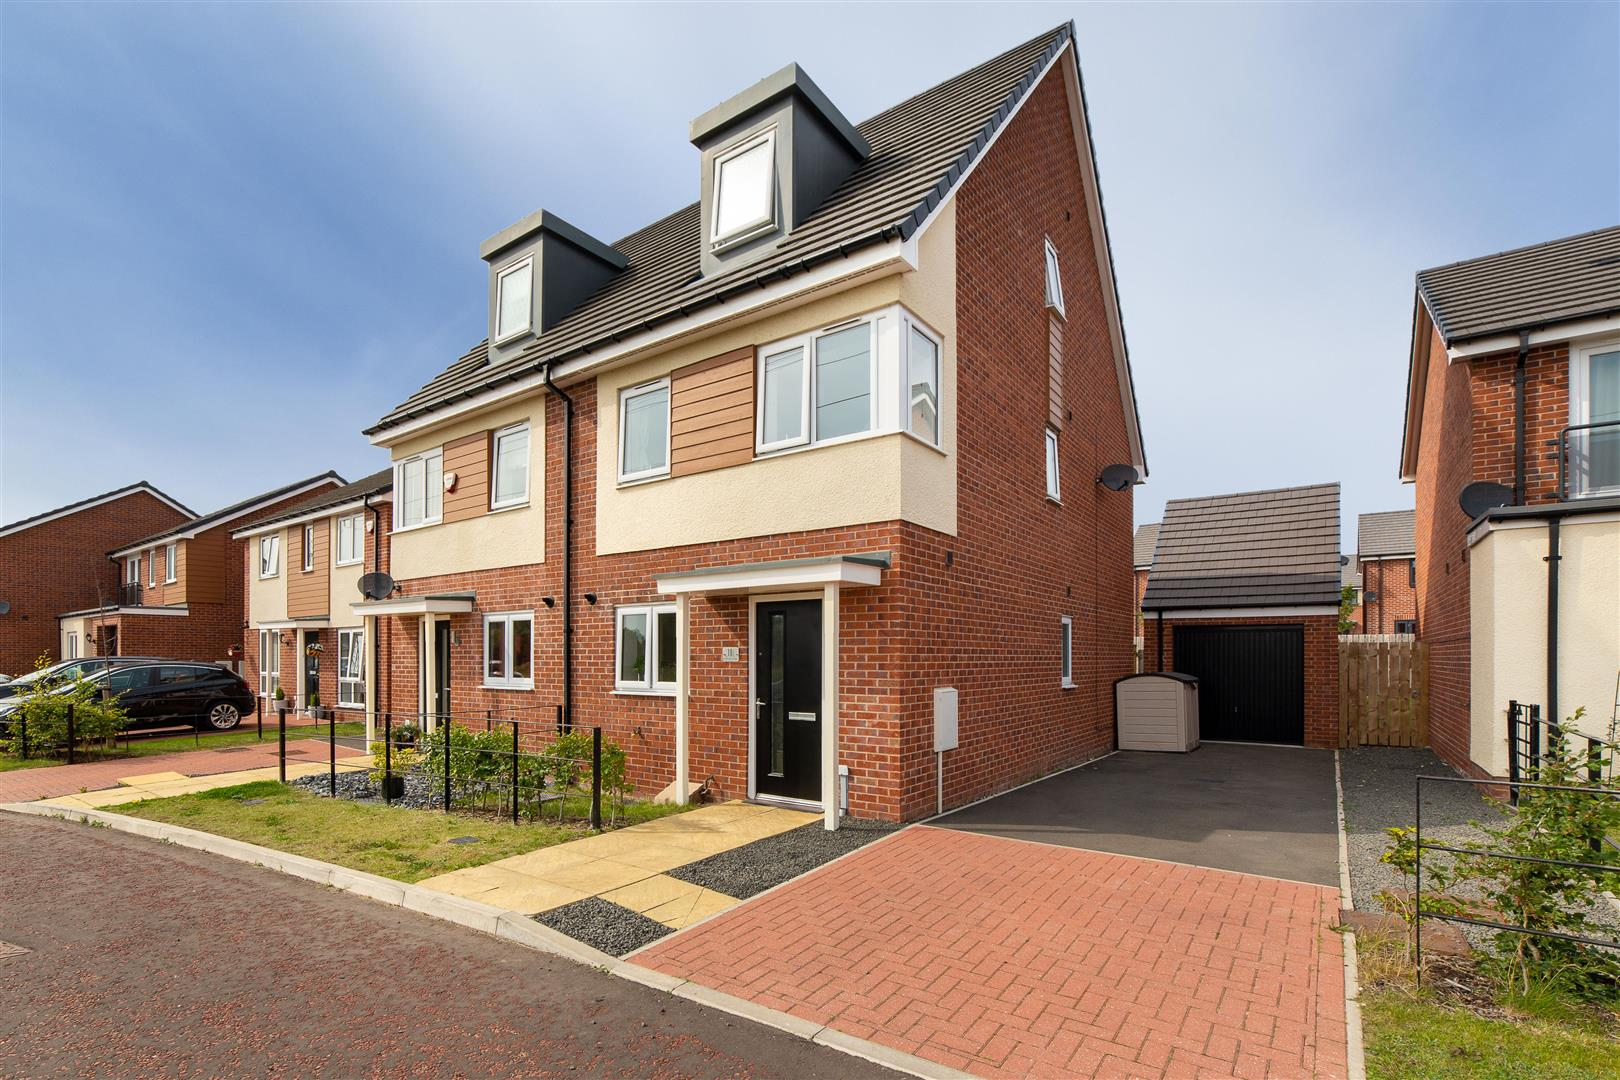 3 bed town house for sale in Newcastle Upon Tyne, NE13 9DE, NE13